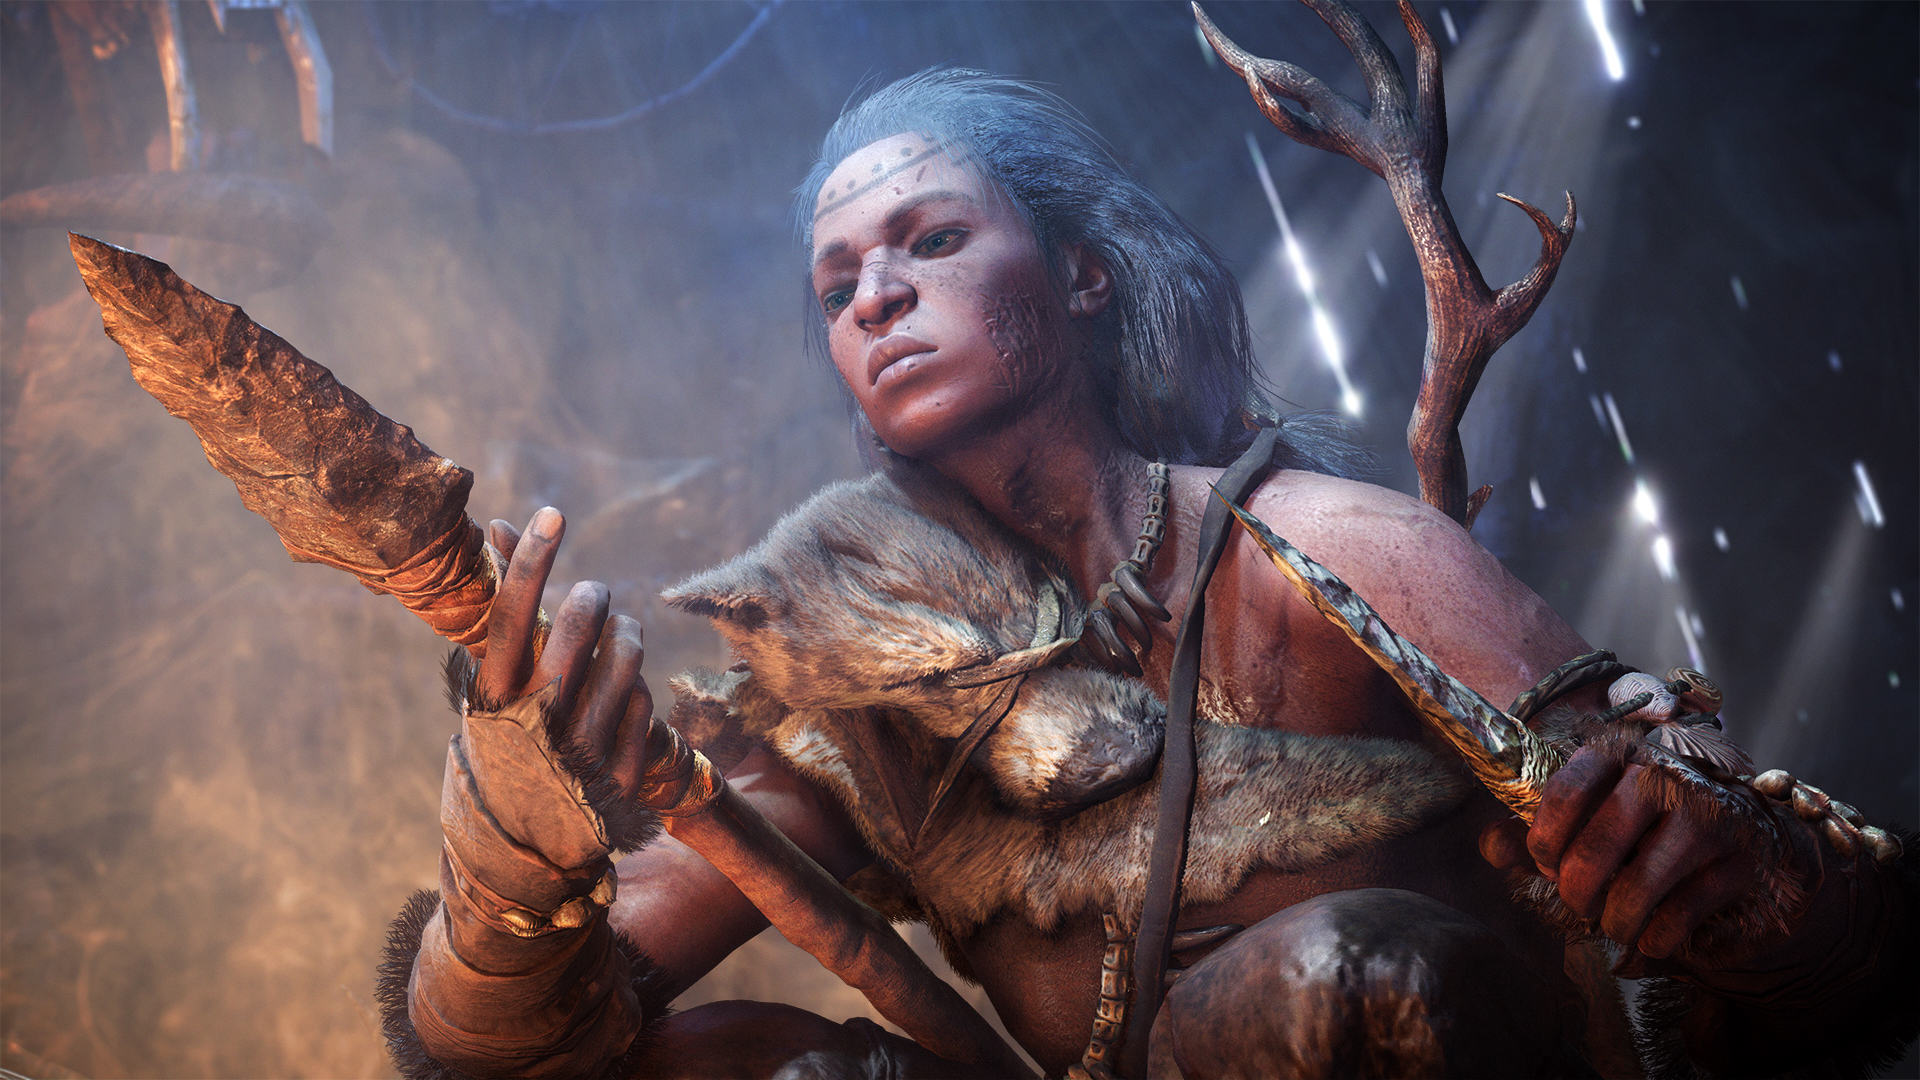 Far Cry Primal Is Shameless Pre Historic Fun, If A Little Shallow FCP 01  Hunter  Screenshots PREVIEW PR 160126 6pm CET 1453716676